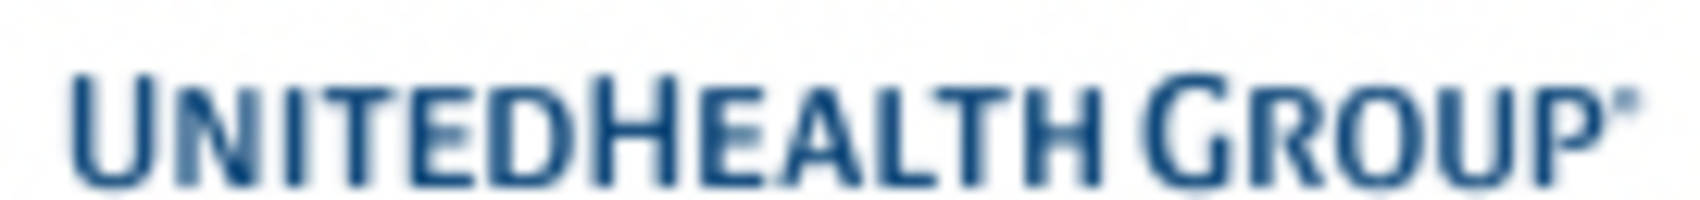 timothy p. flynn joins unitedhealth group board of directors